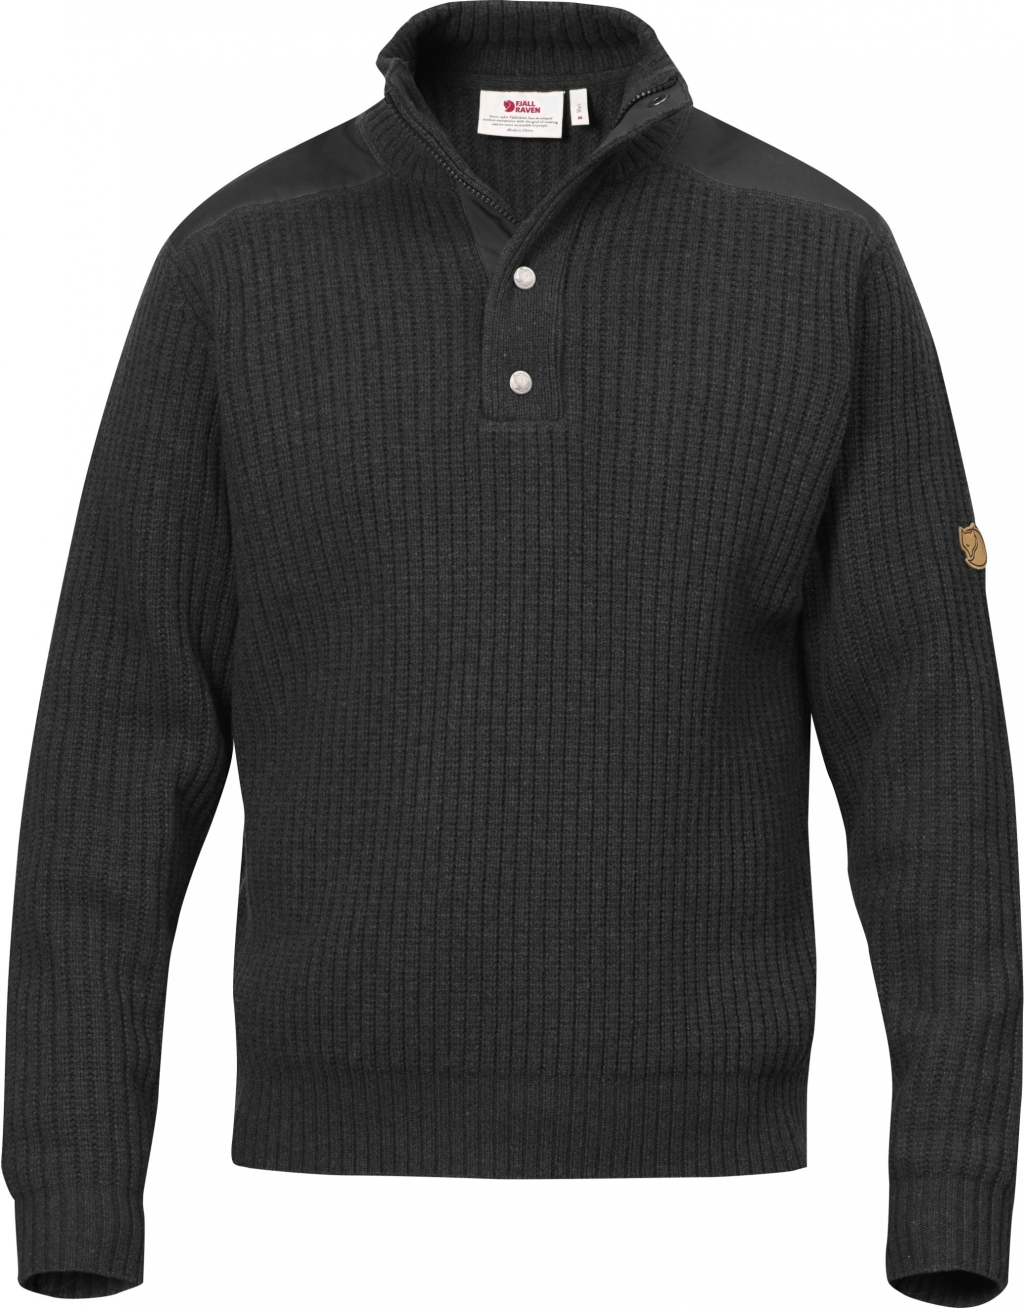 FjallRaven Varmland T-neck Sweater Dark Grey-30